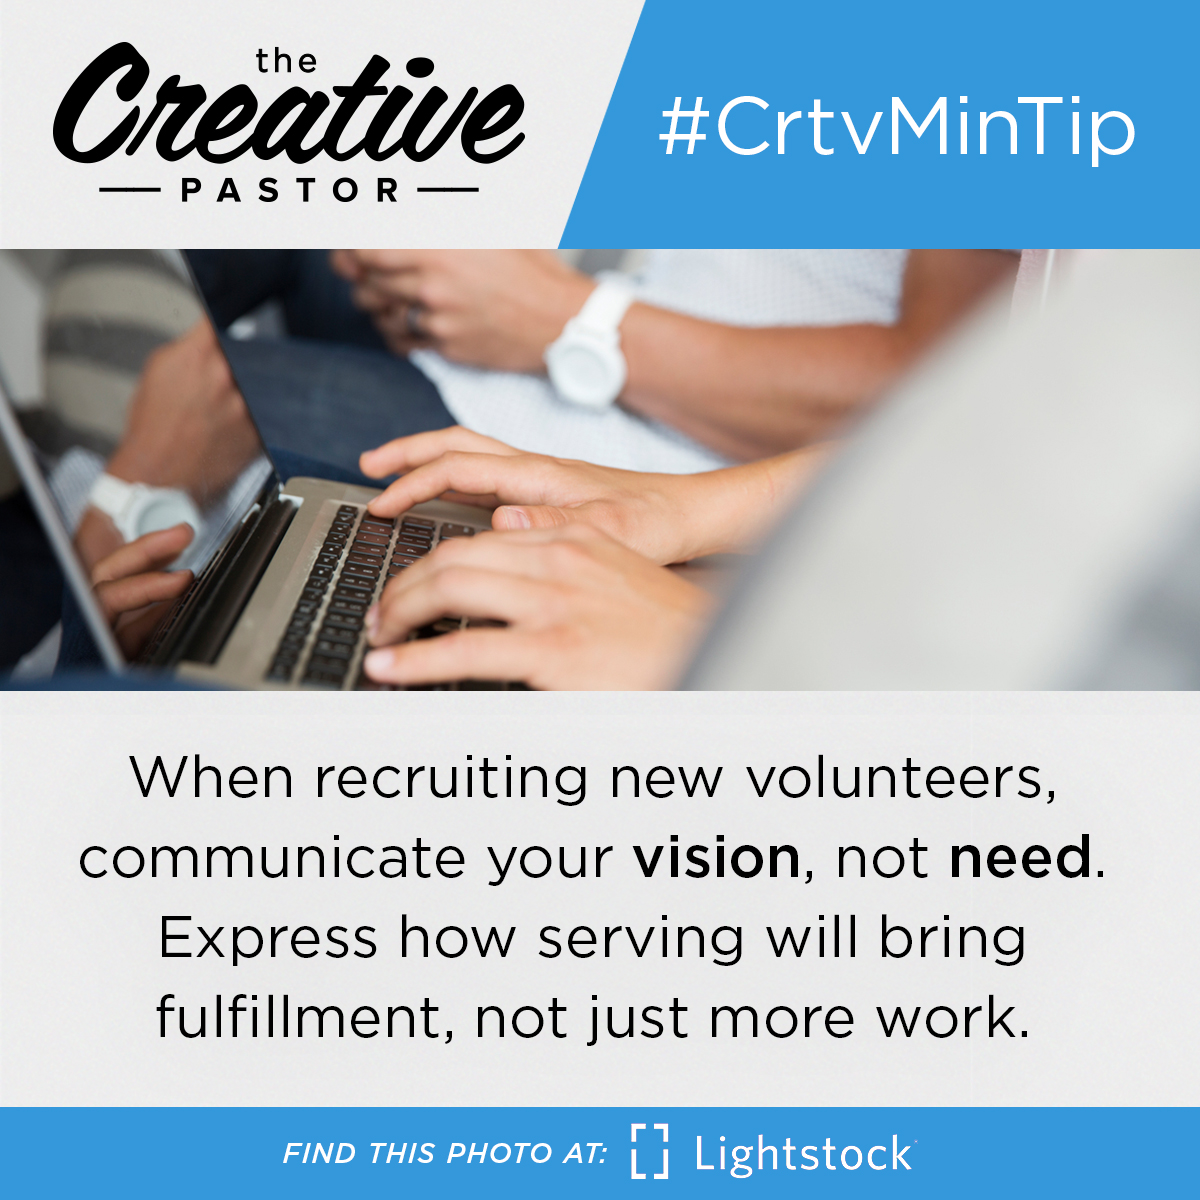 #CrtvMinTip: When recruiting new volunteers, communicate your vision, not need. Express how serving will bring fulfillment life, not just more work.